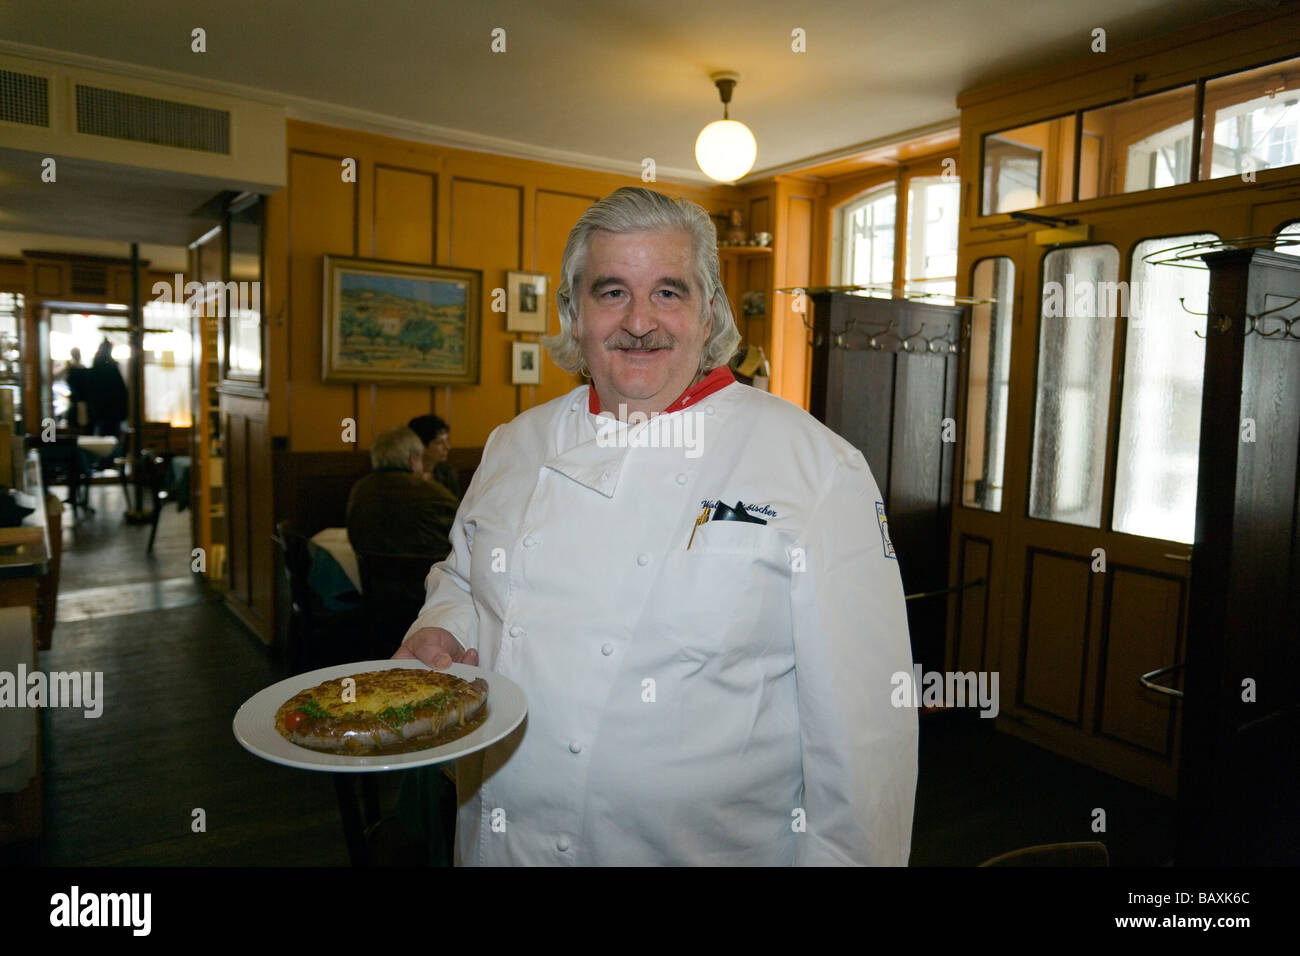 A chef holding traditional food, Restaurant Harmonie, Old City of Berne, Berne, Switzerland - Stock Image